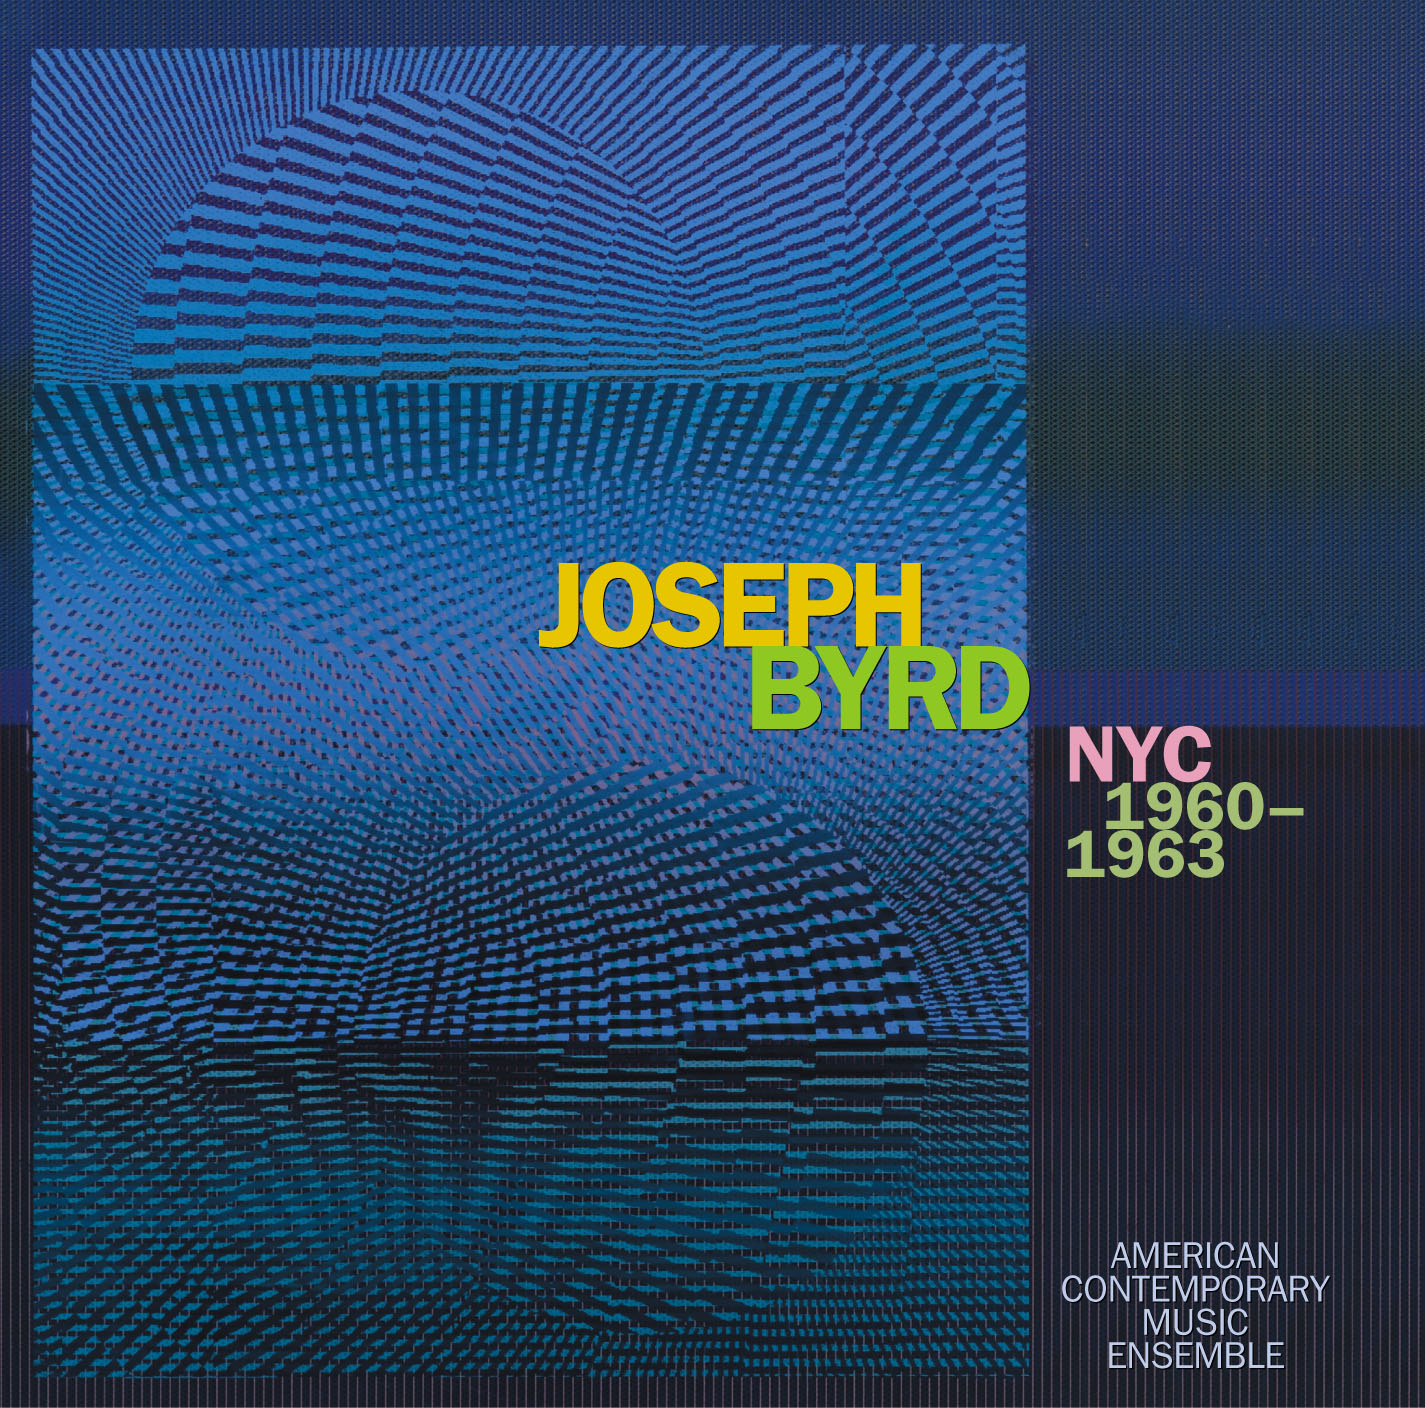 Joseph Byrd: NYC 1960-1963 - American Contemporary Music EnsembleNew World Records, 2013